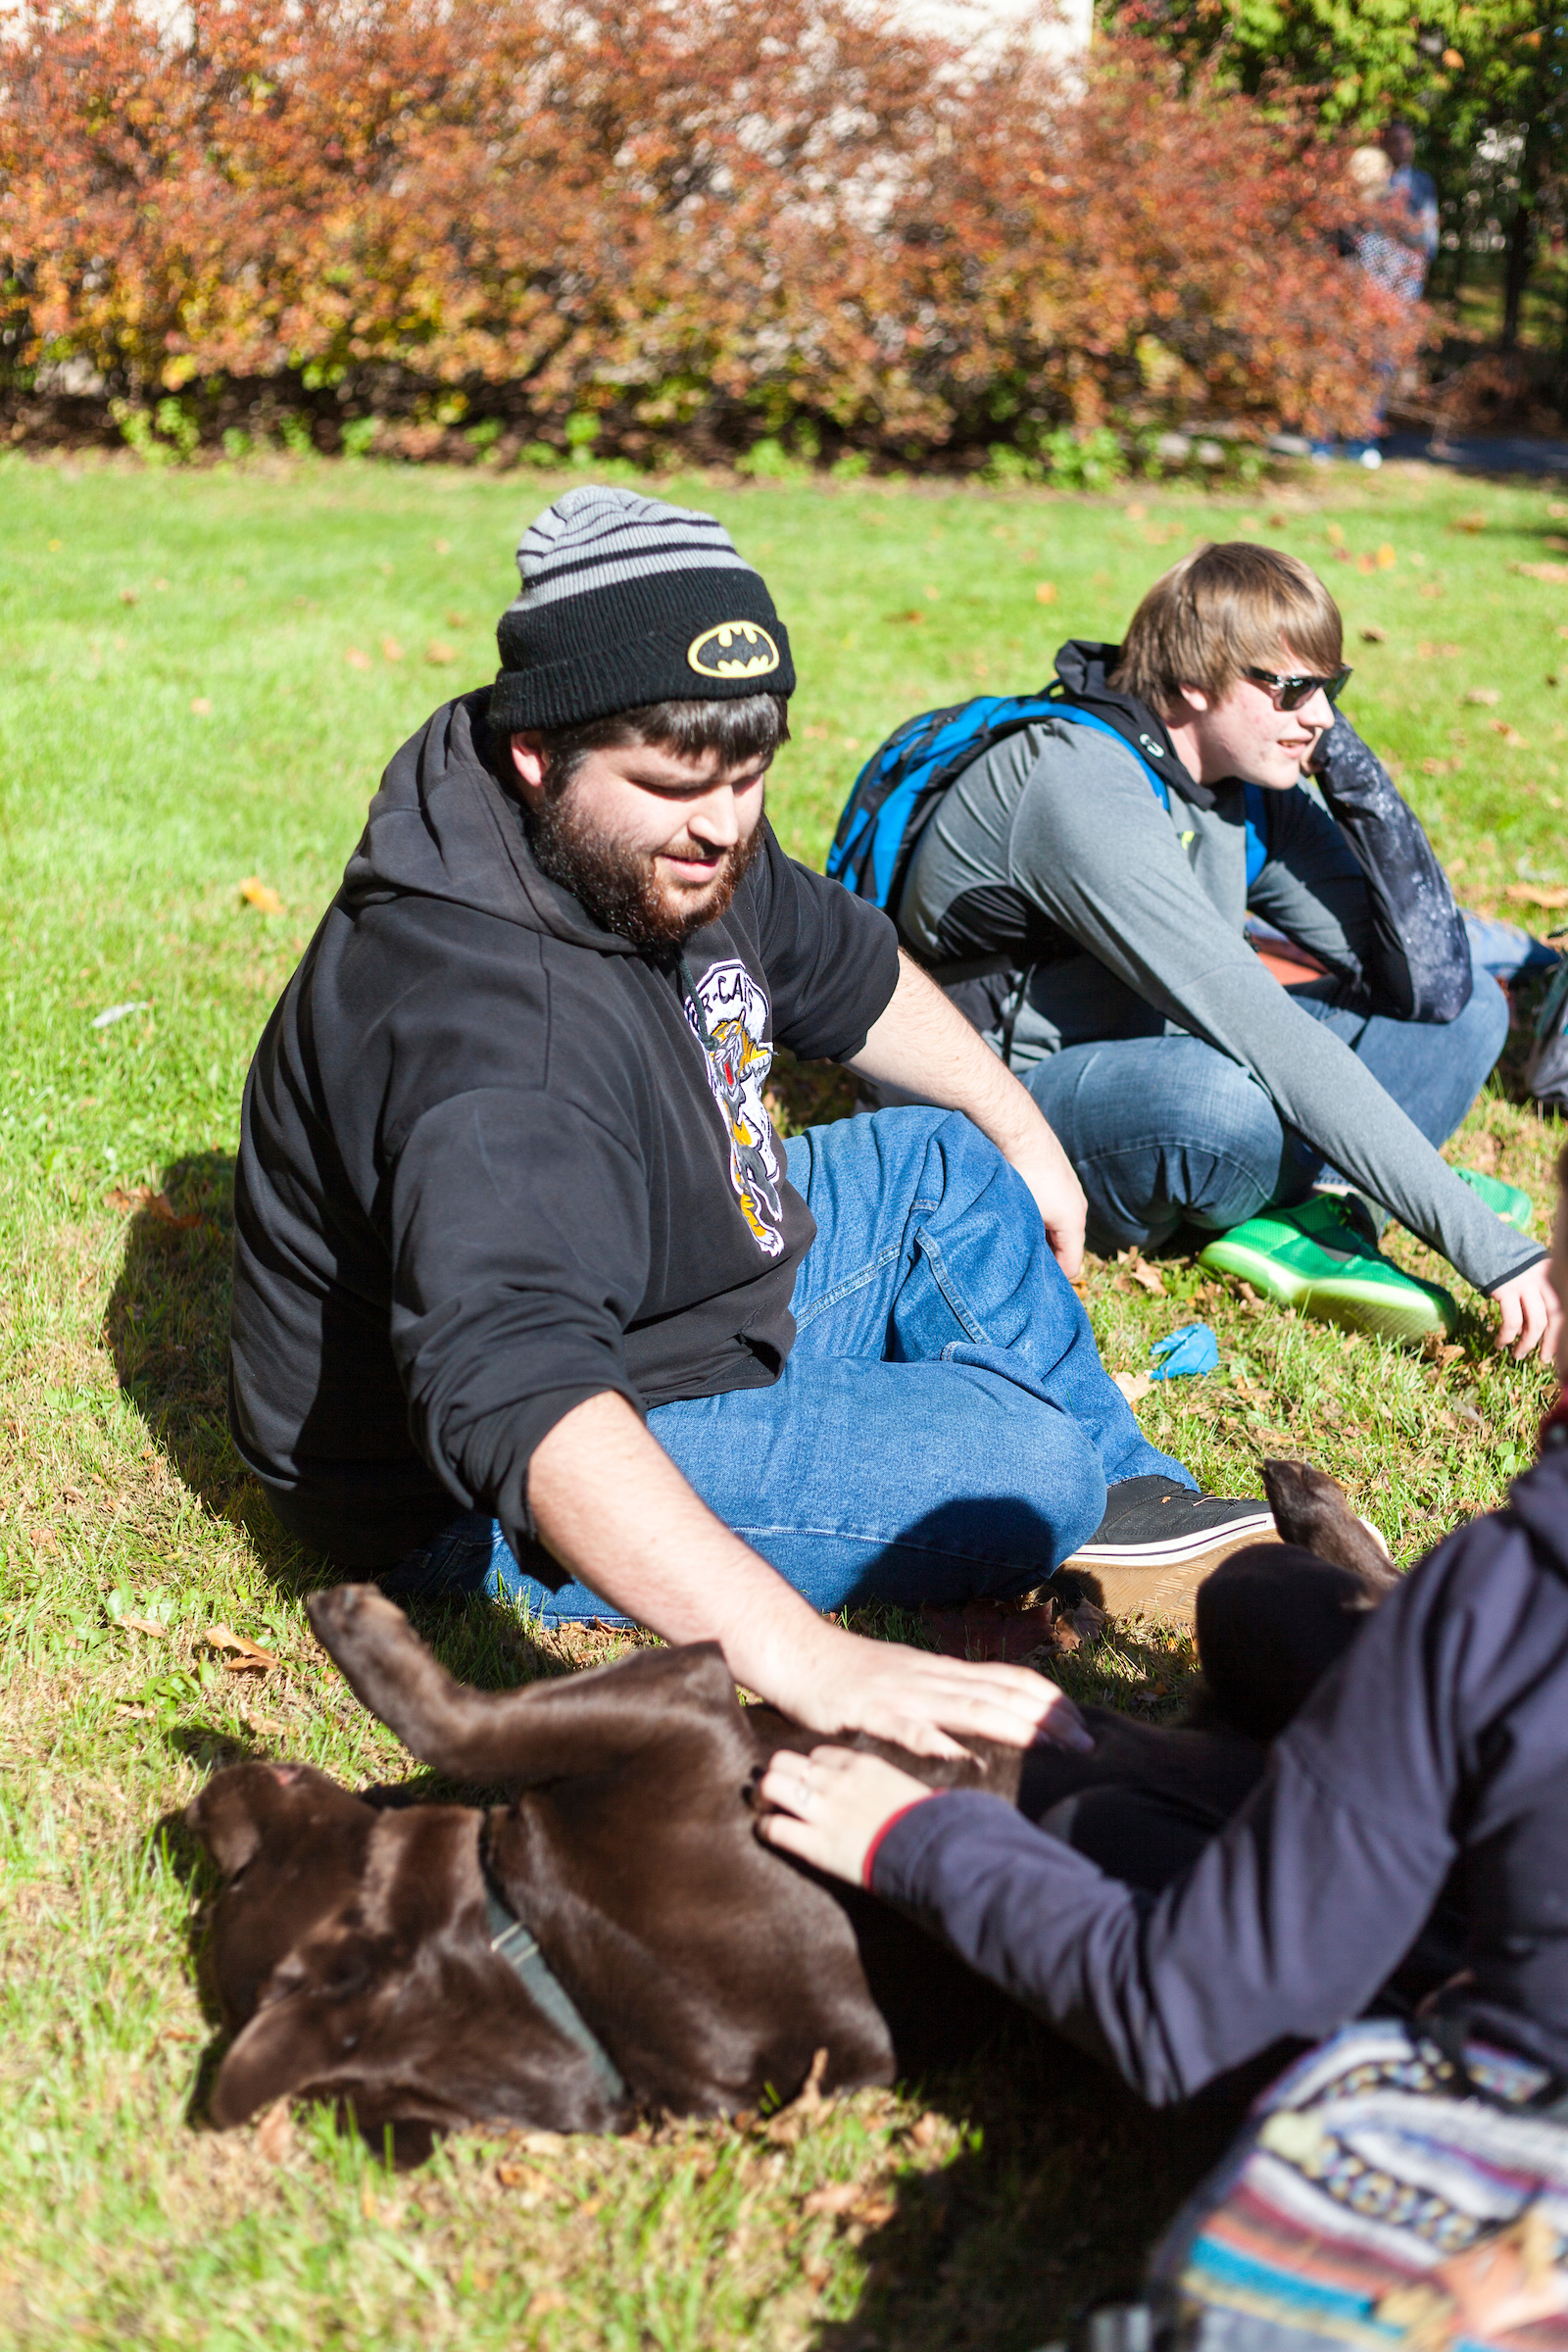 Three students sit on the grass with a large brown dog. The dog is rolling in the grass and the students are petting him.